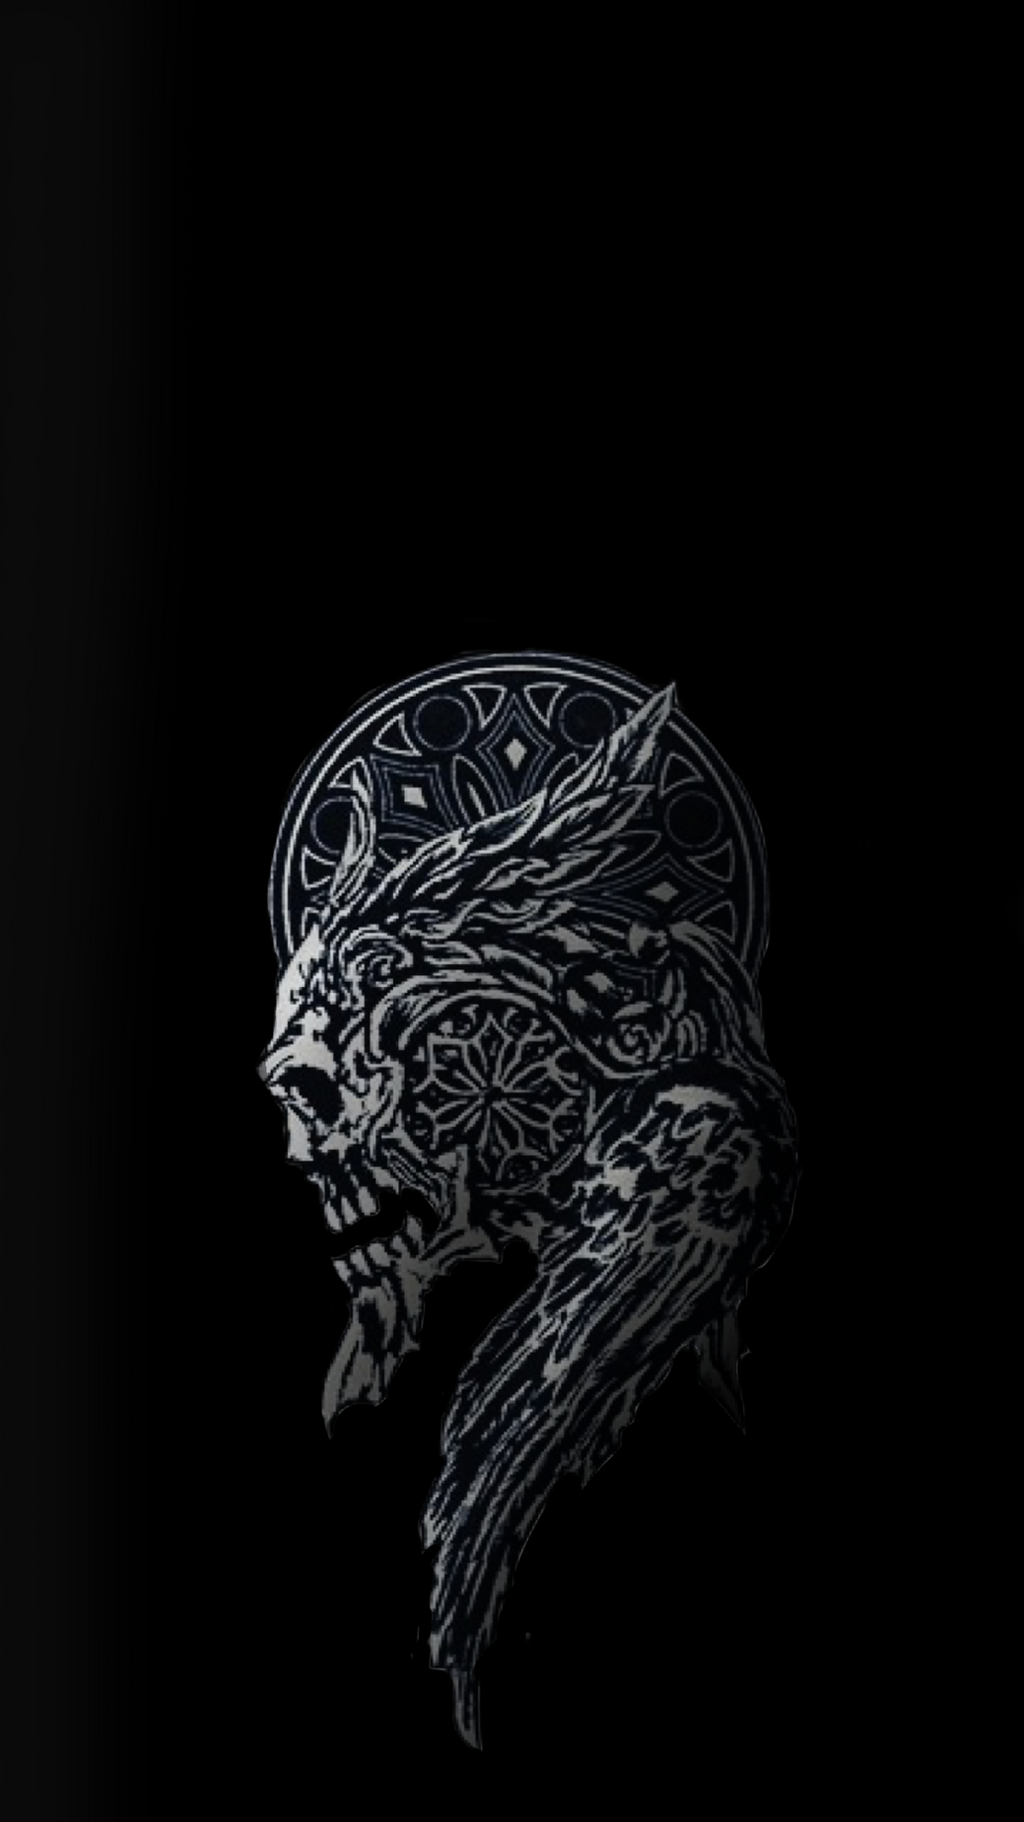 Final fantasy xv iphone wallpaper by dannielarts on deviantart - Final fantasy phone wallpaper ...